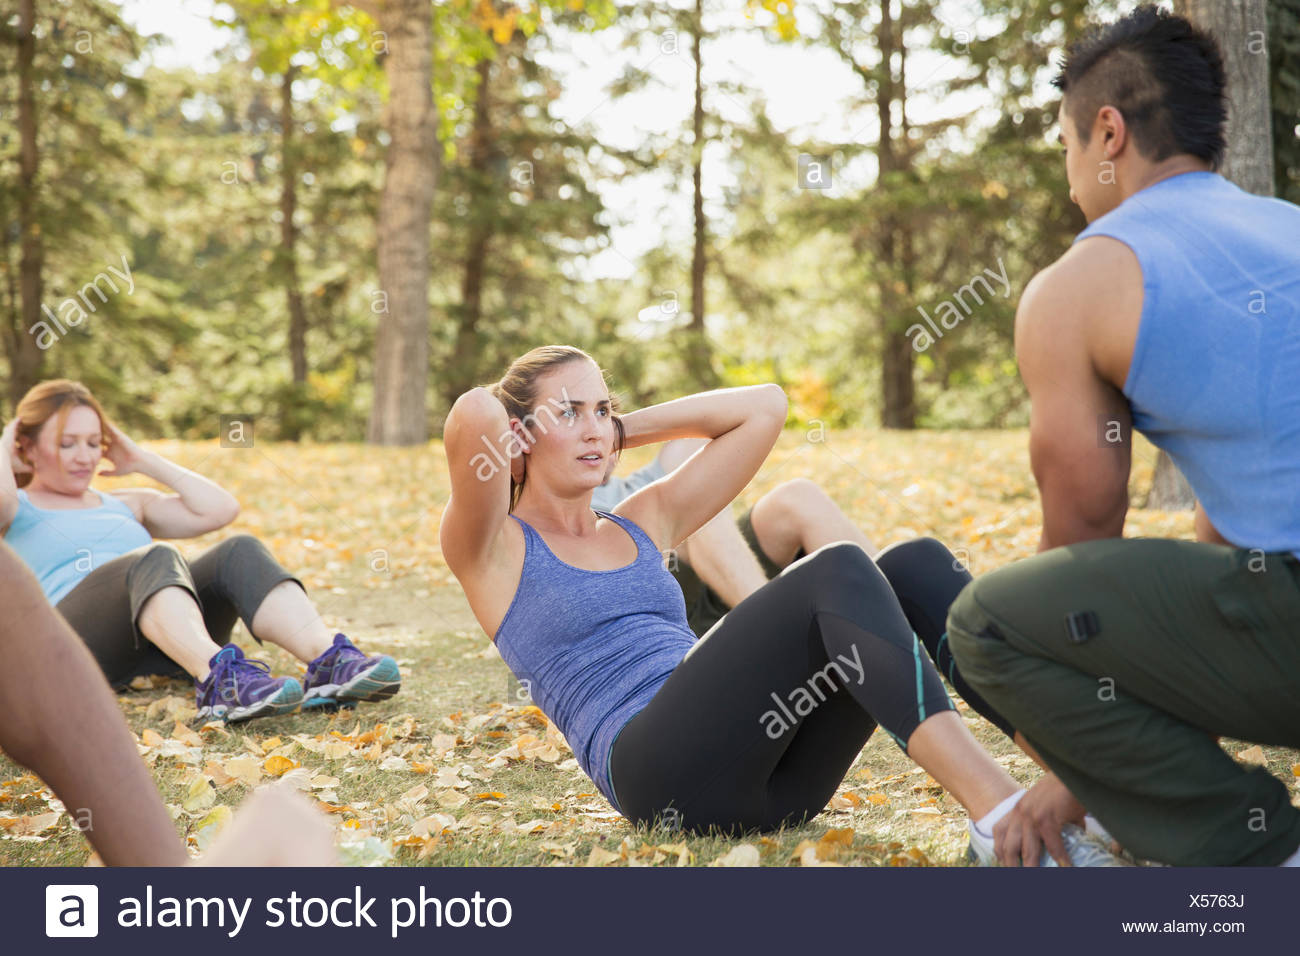 Trainer supporting woman as she does sit-ups. - Stock Image